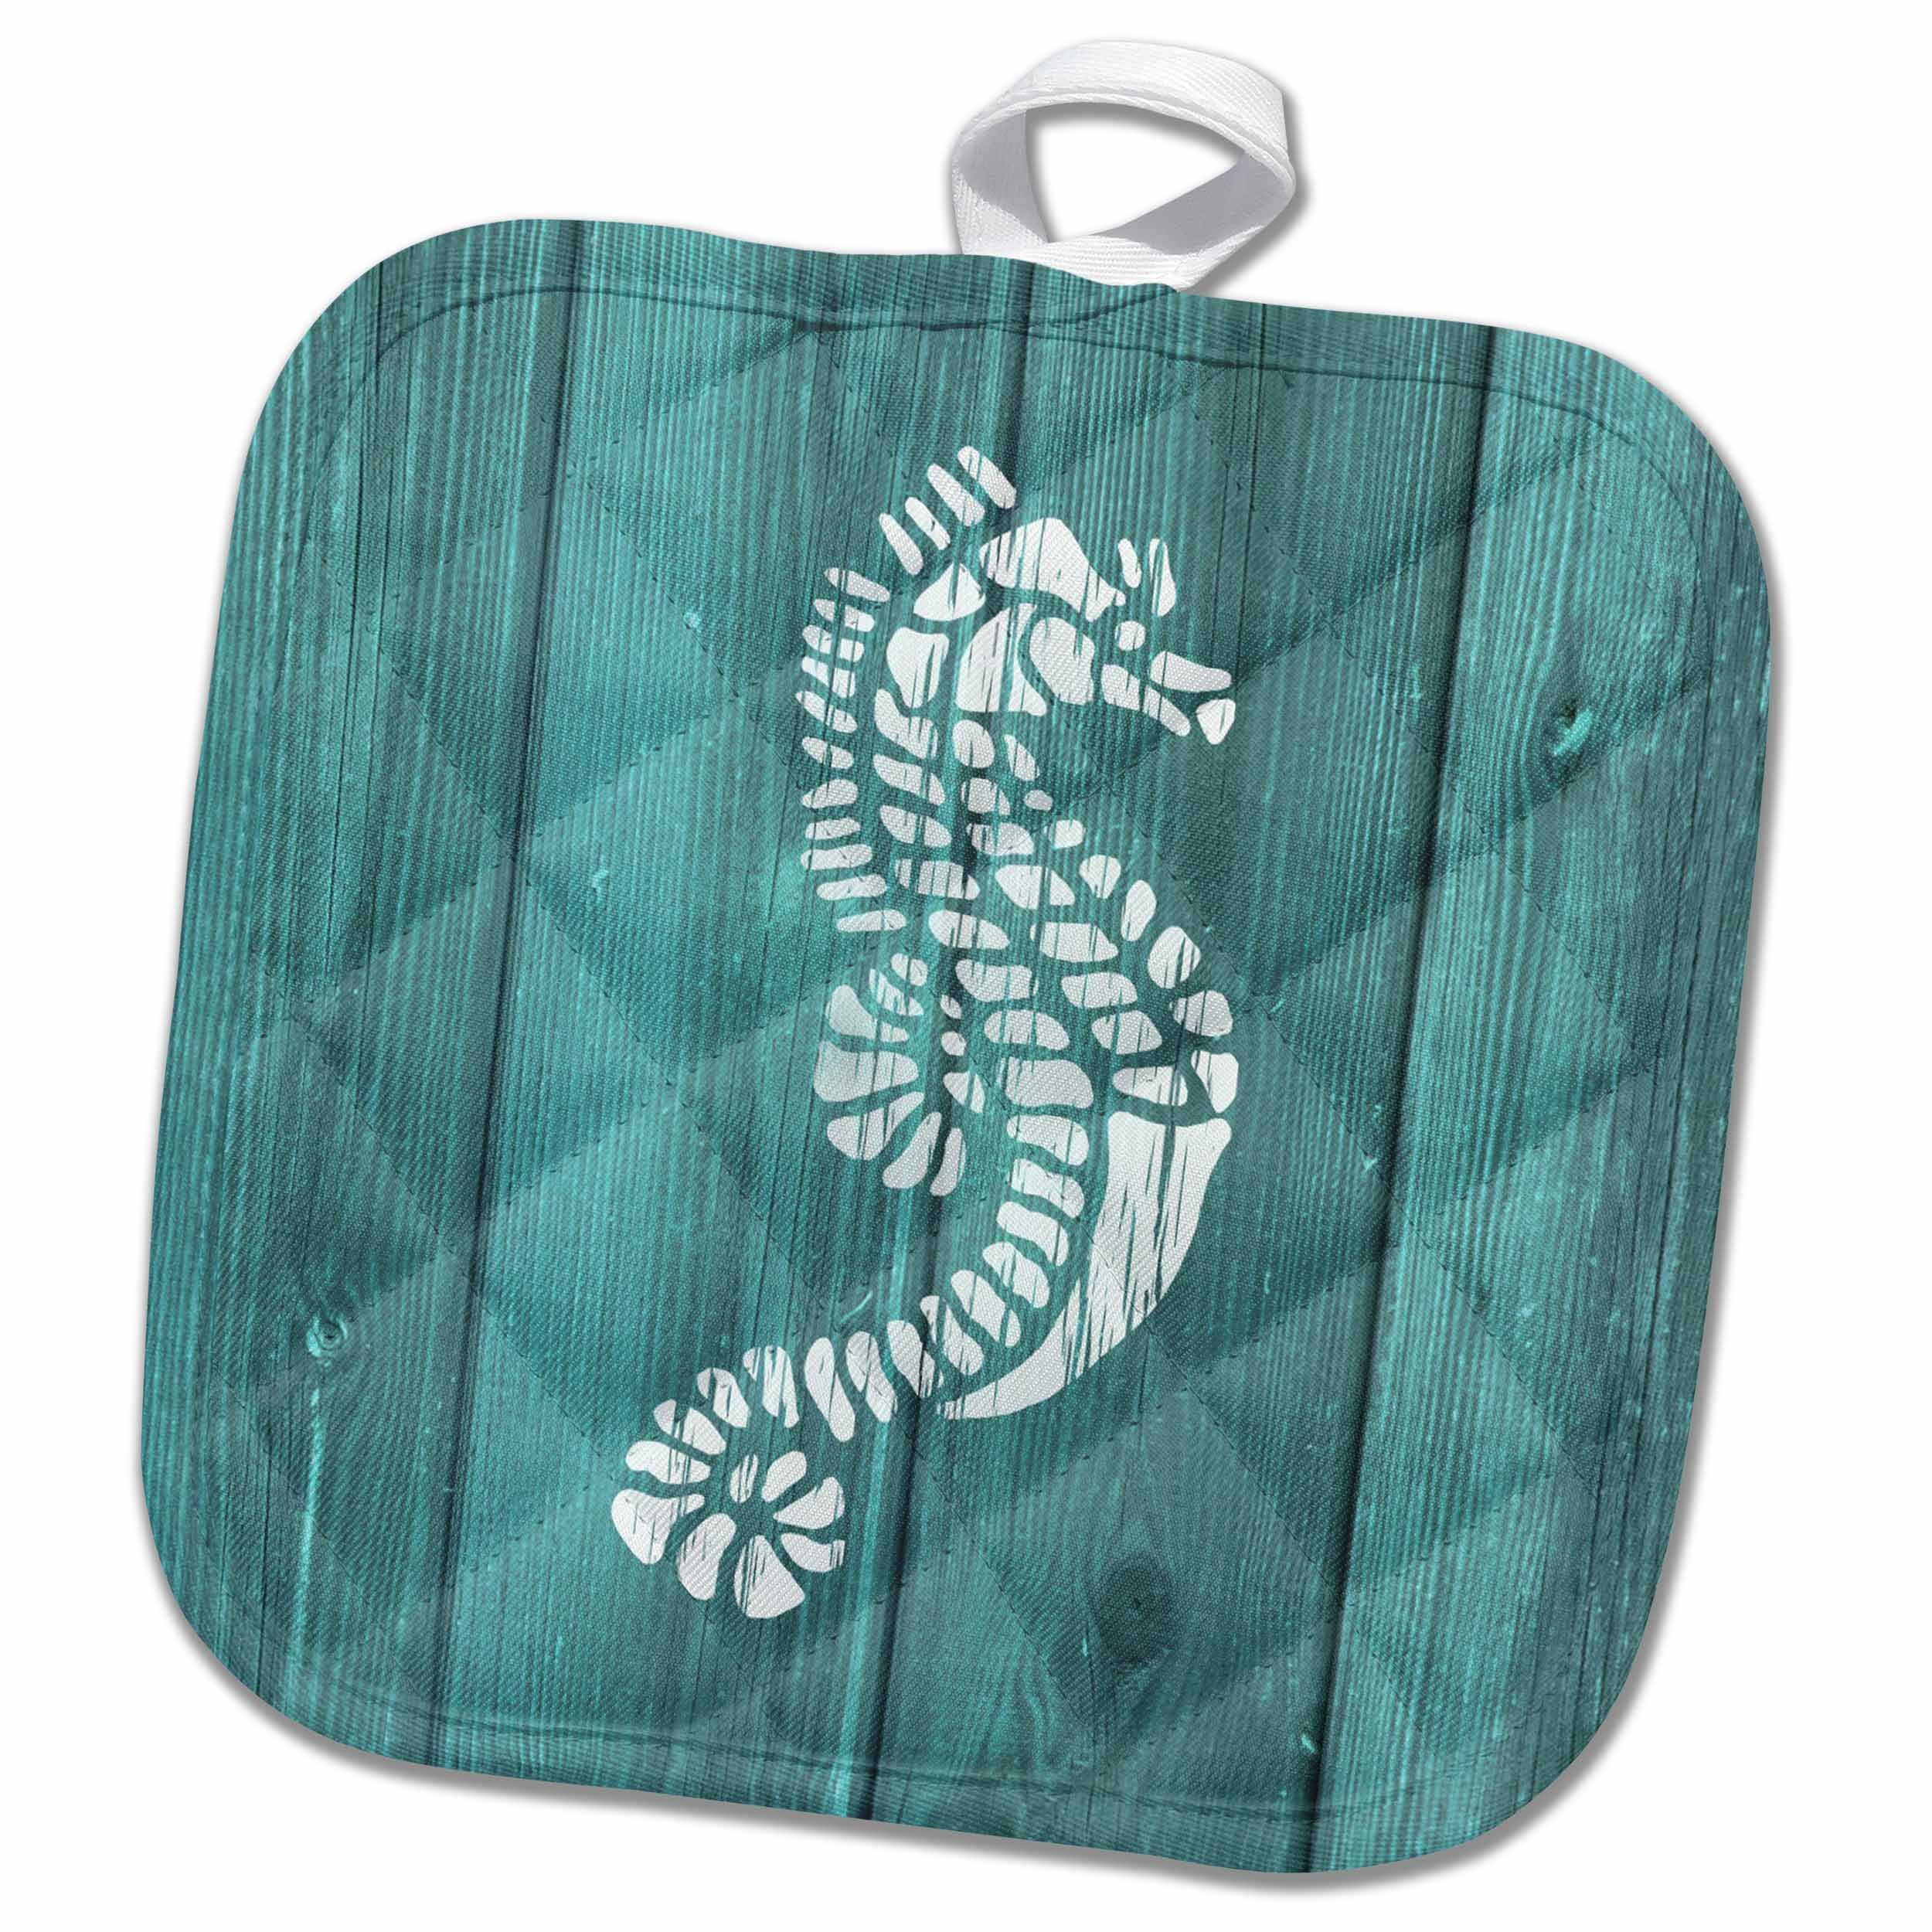 3D Rose Photo of Seahorse Aqua Painted Real Wood Pot Holder, 8 x 8'', White